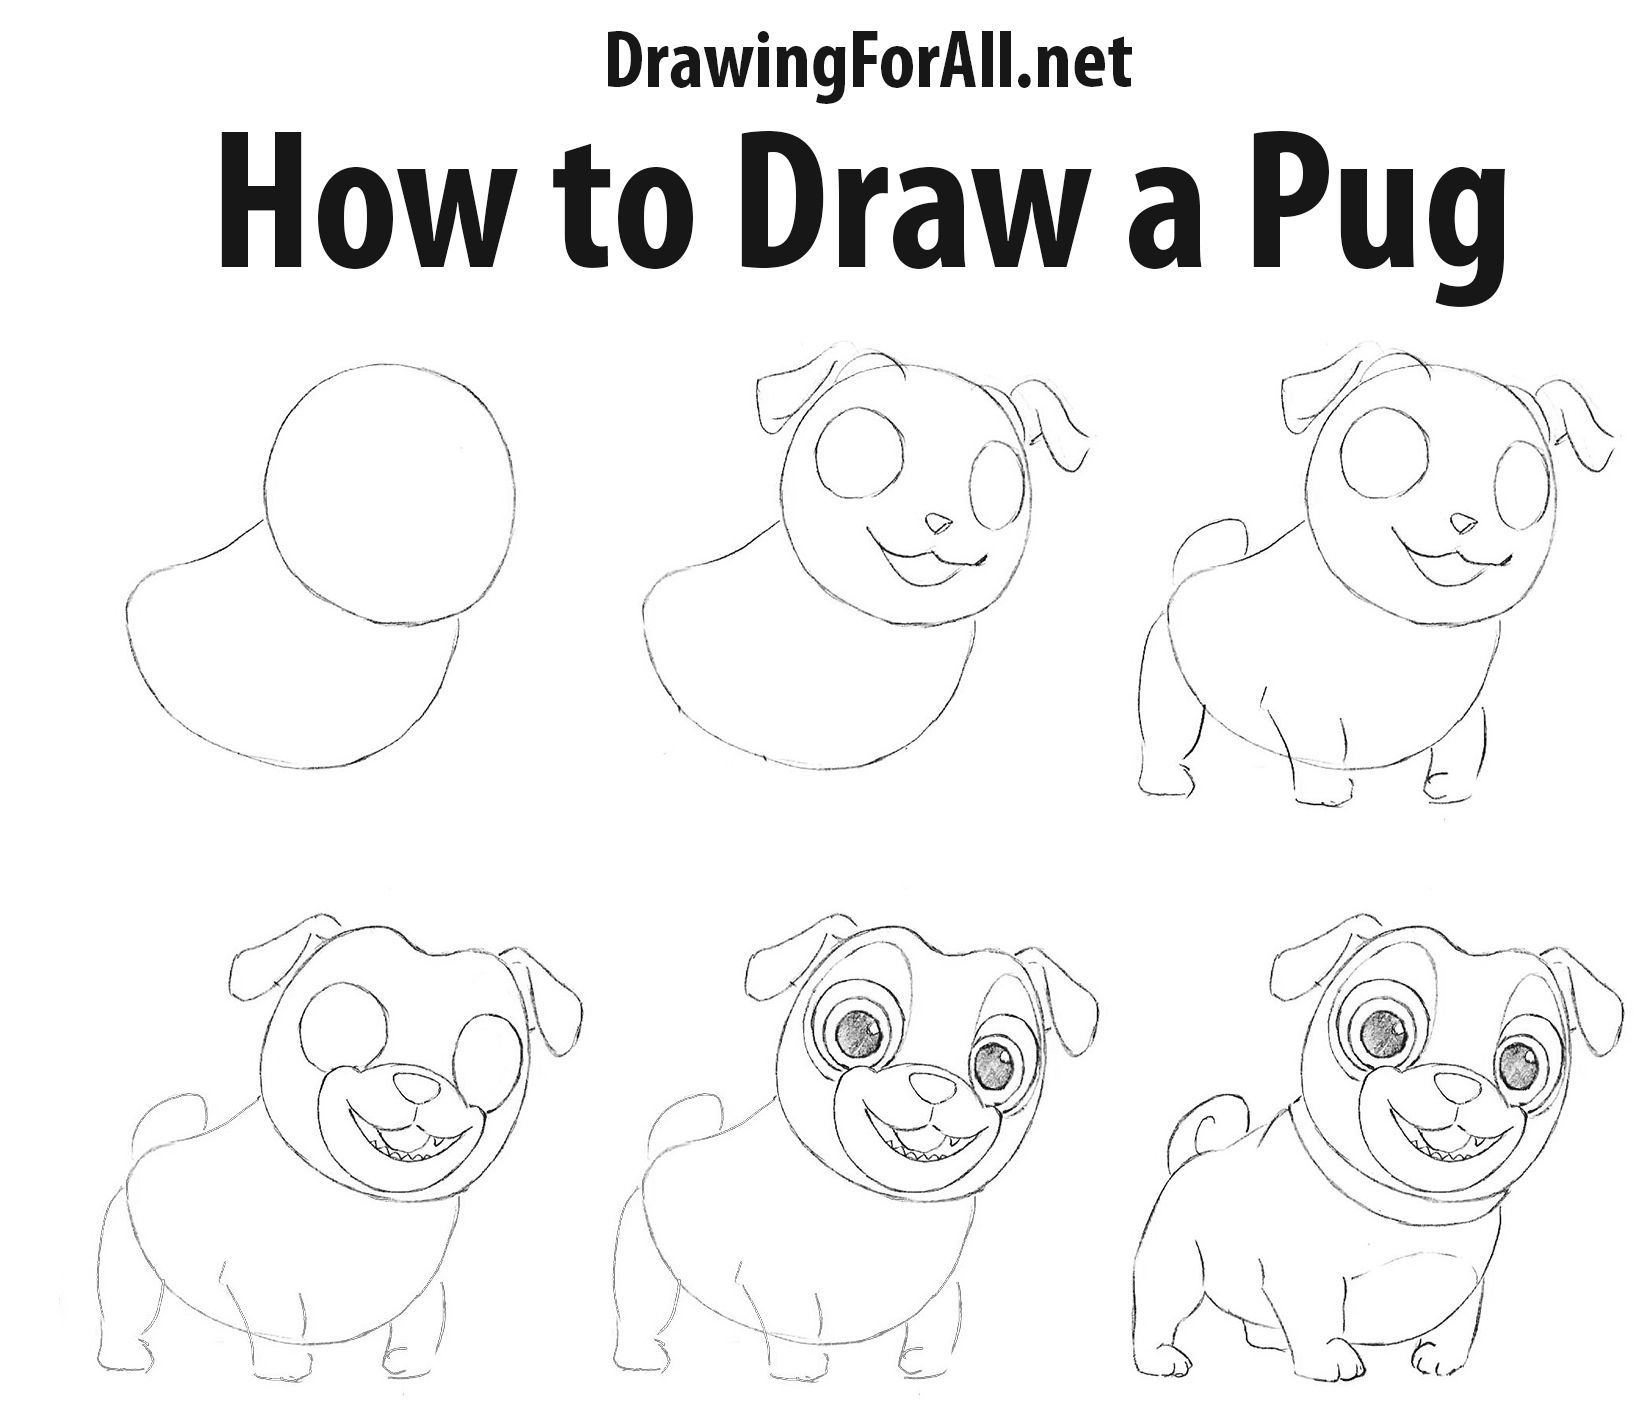 How to draw puppy dog pals dog drawing for kids puppy